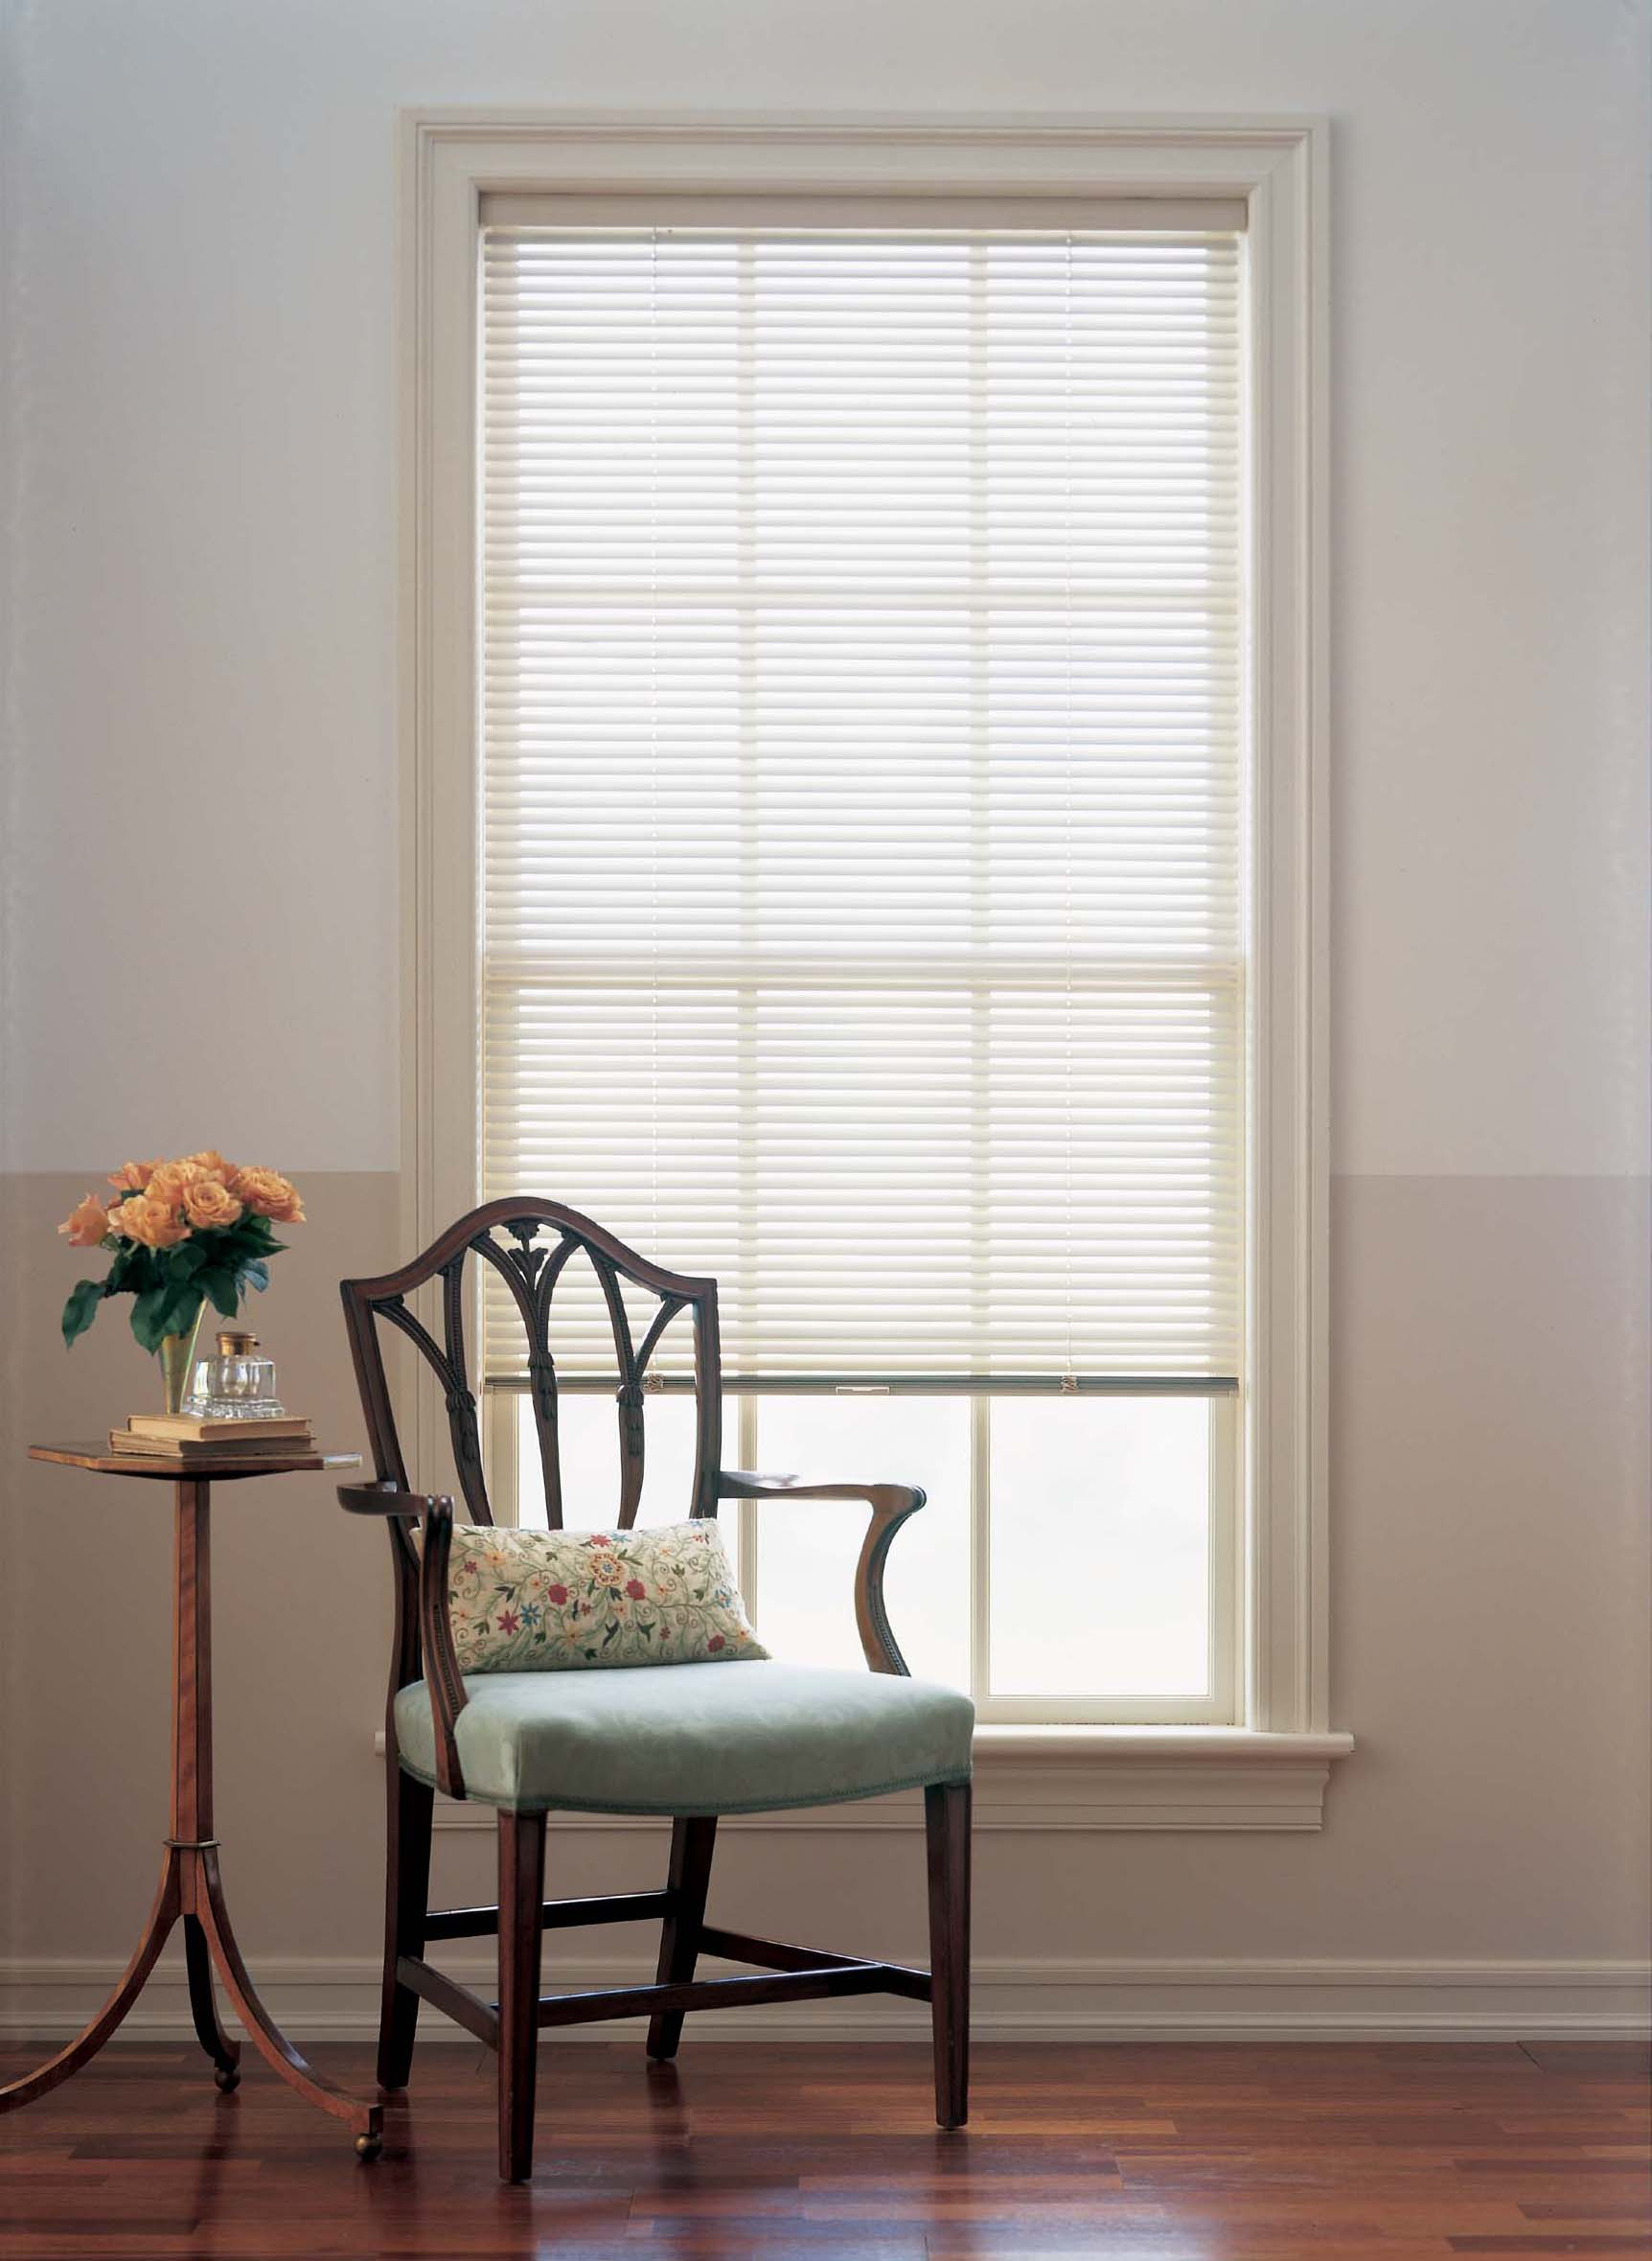 full wood bottom size blind myhomedesign win blinds manufacturers on window weight february suppliers and of china mini vertical parts micro